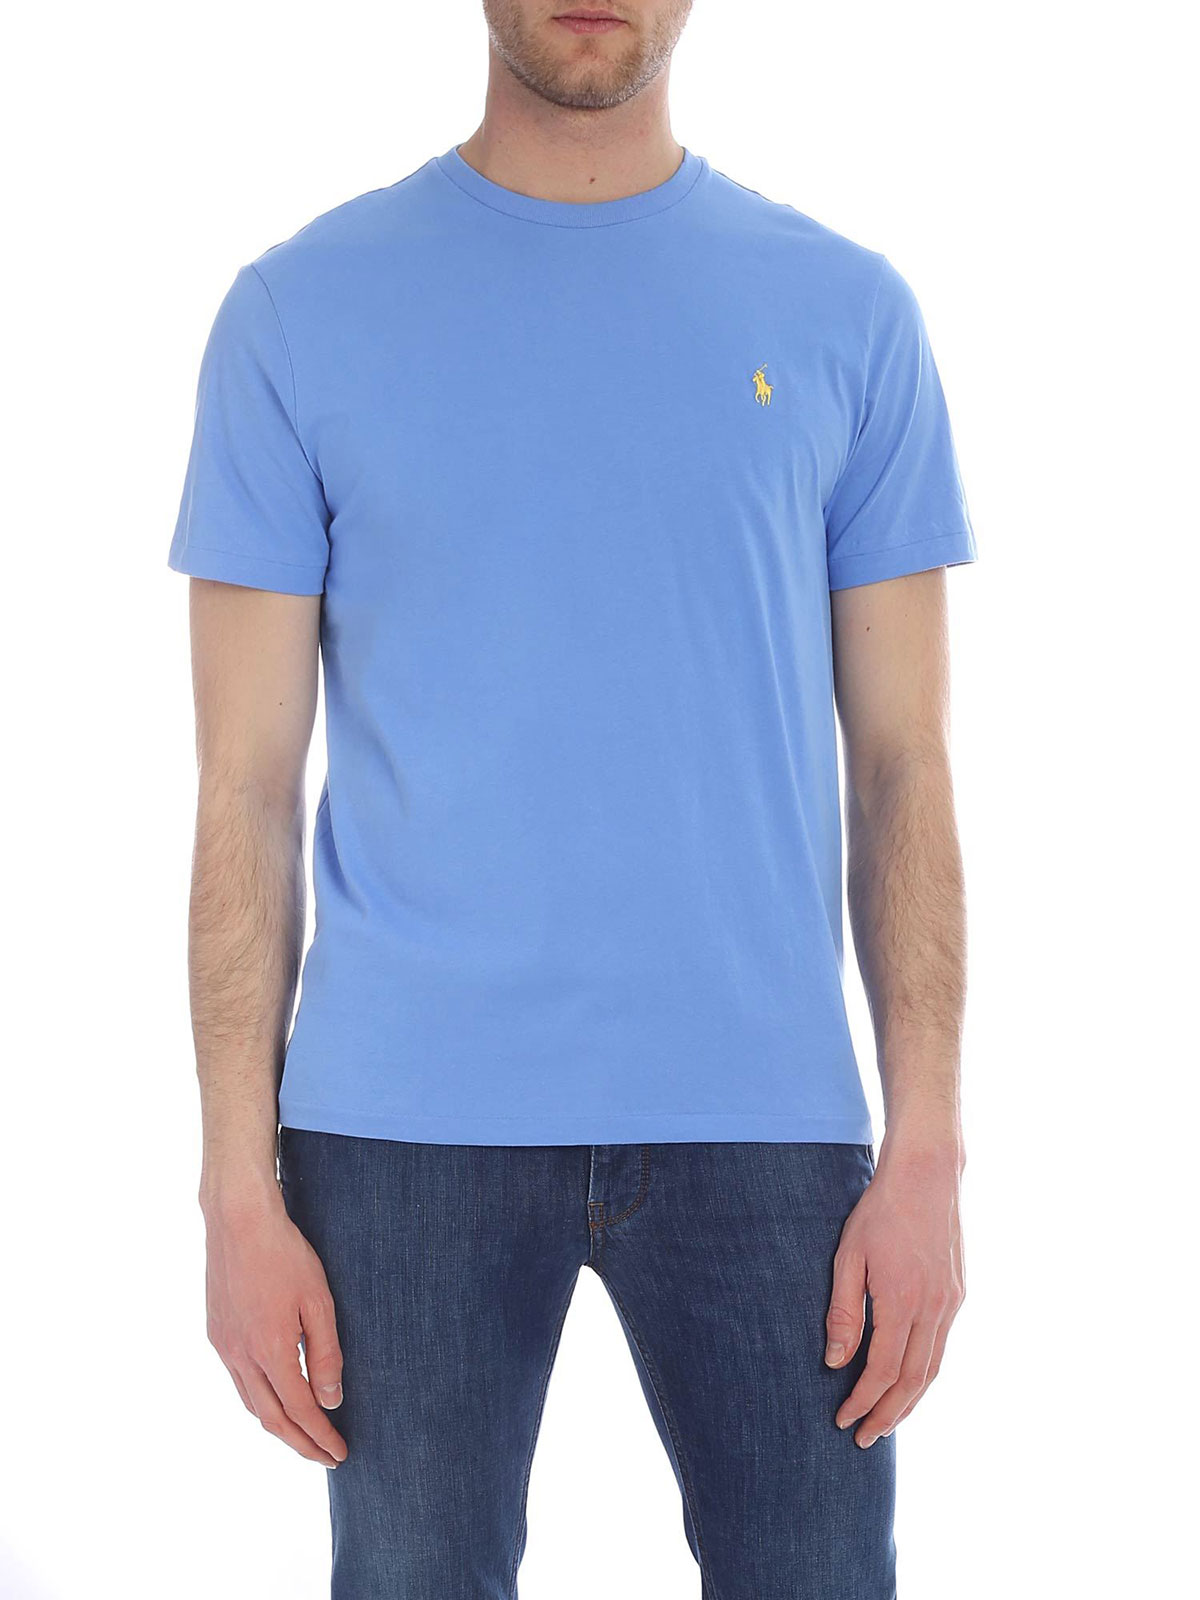 7b5451723 POLO RALPH LAUREN Men s Custom Fit T-Shirt Island Blue ...